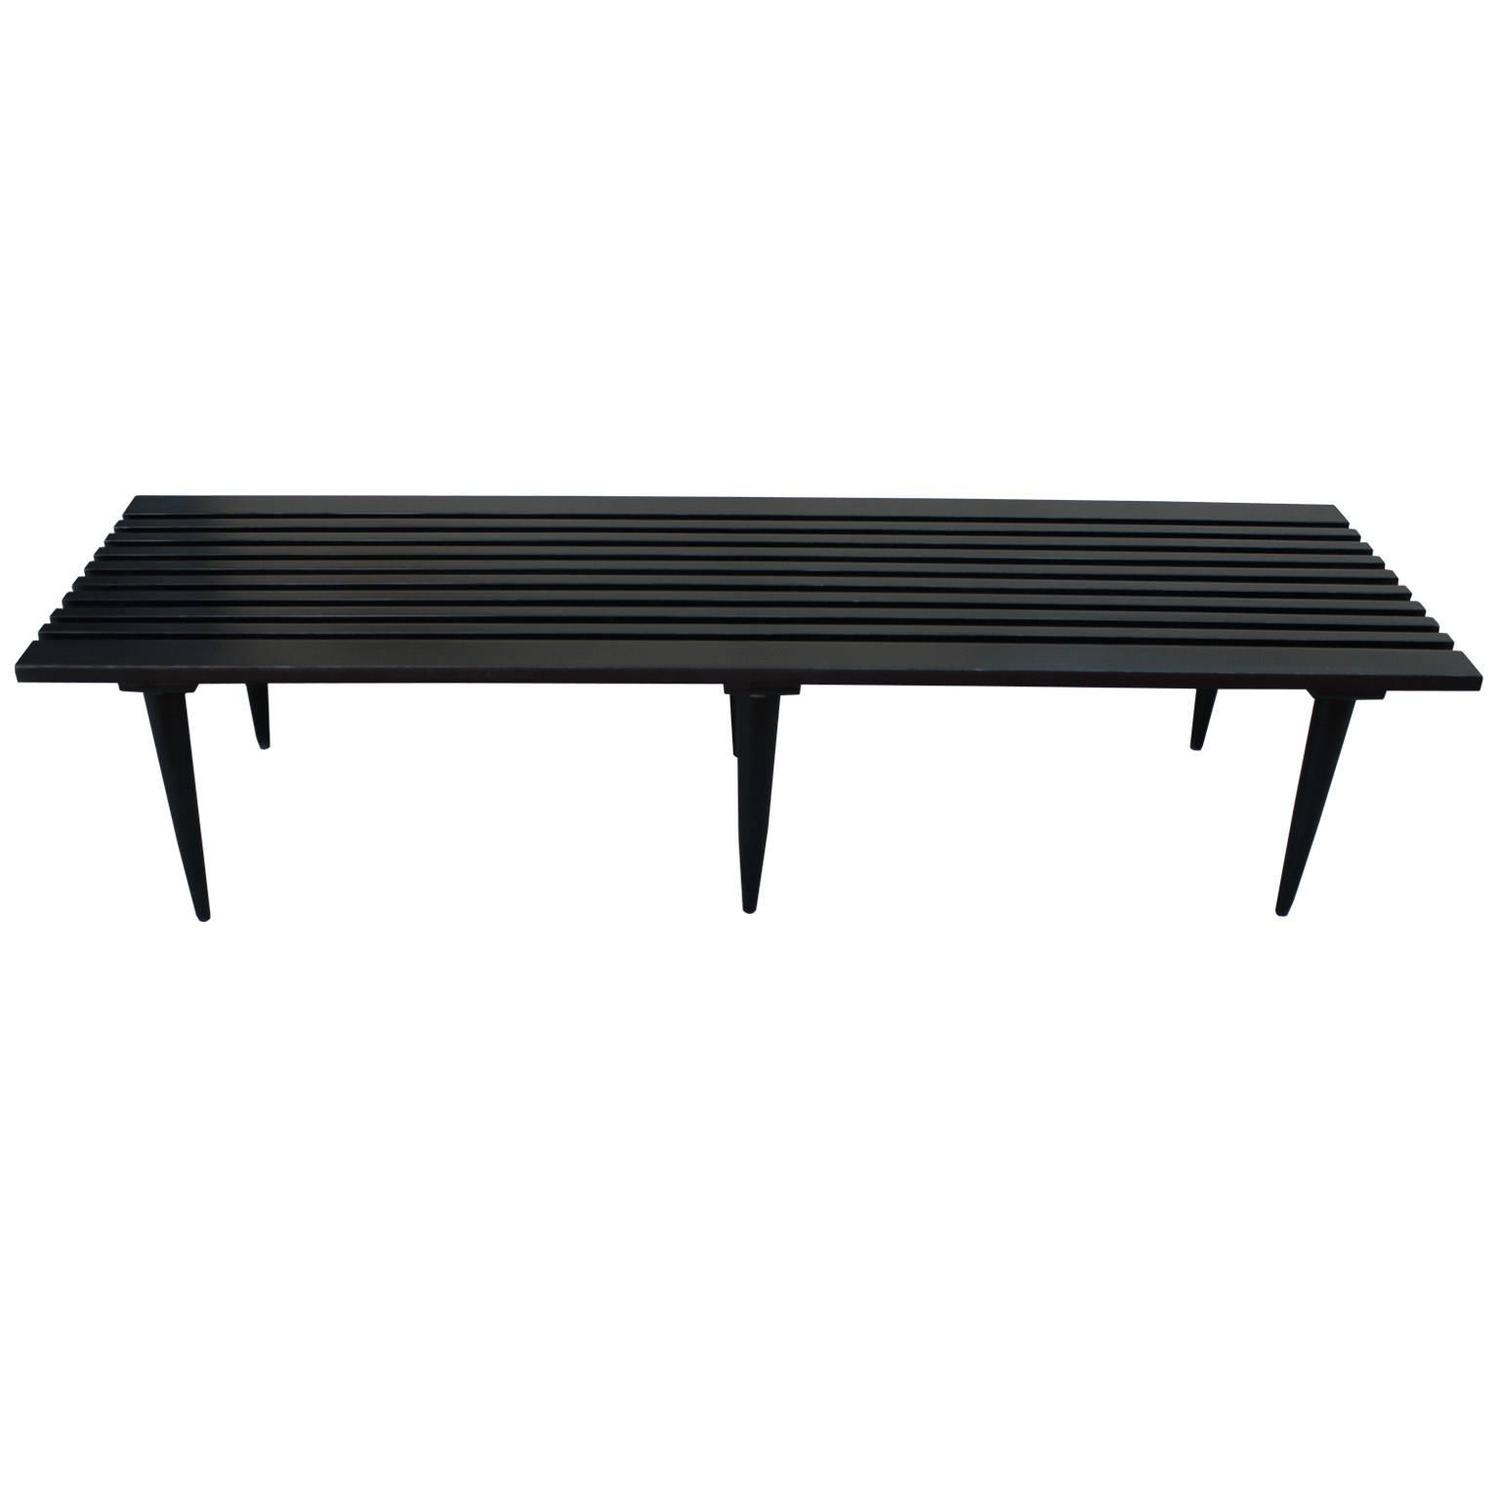 Sleek Black Slatted Coffee Table Or Bench For Sale At 1stdibs